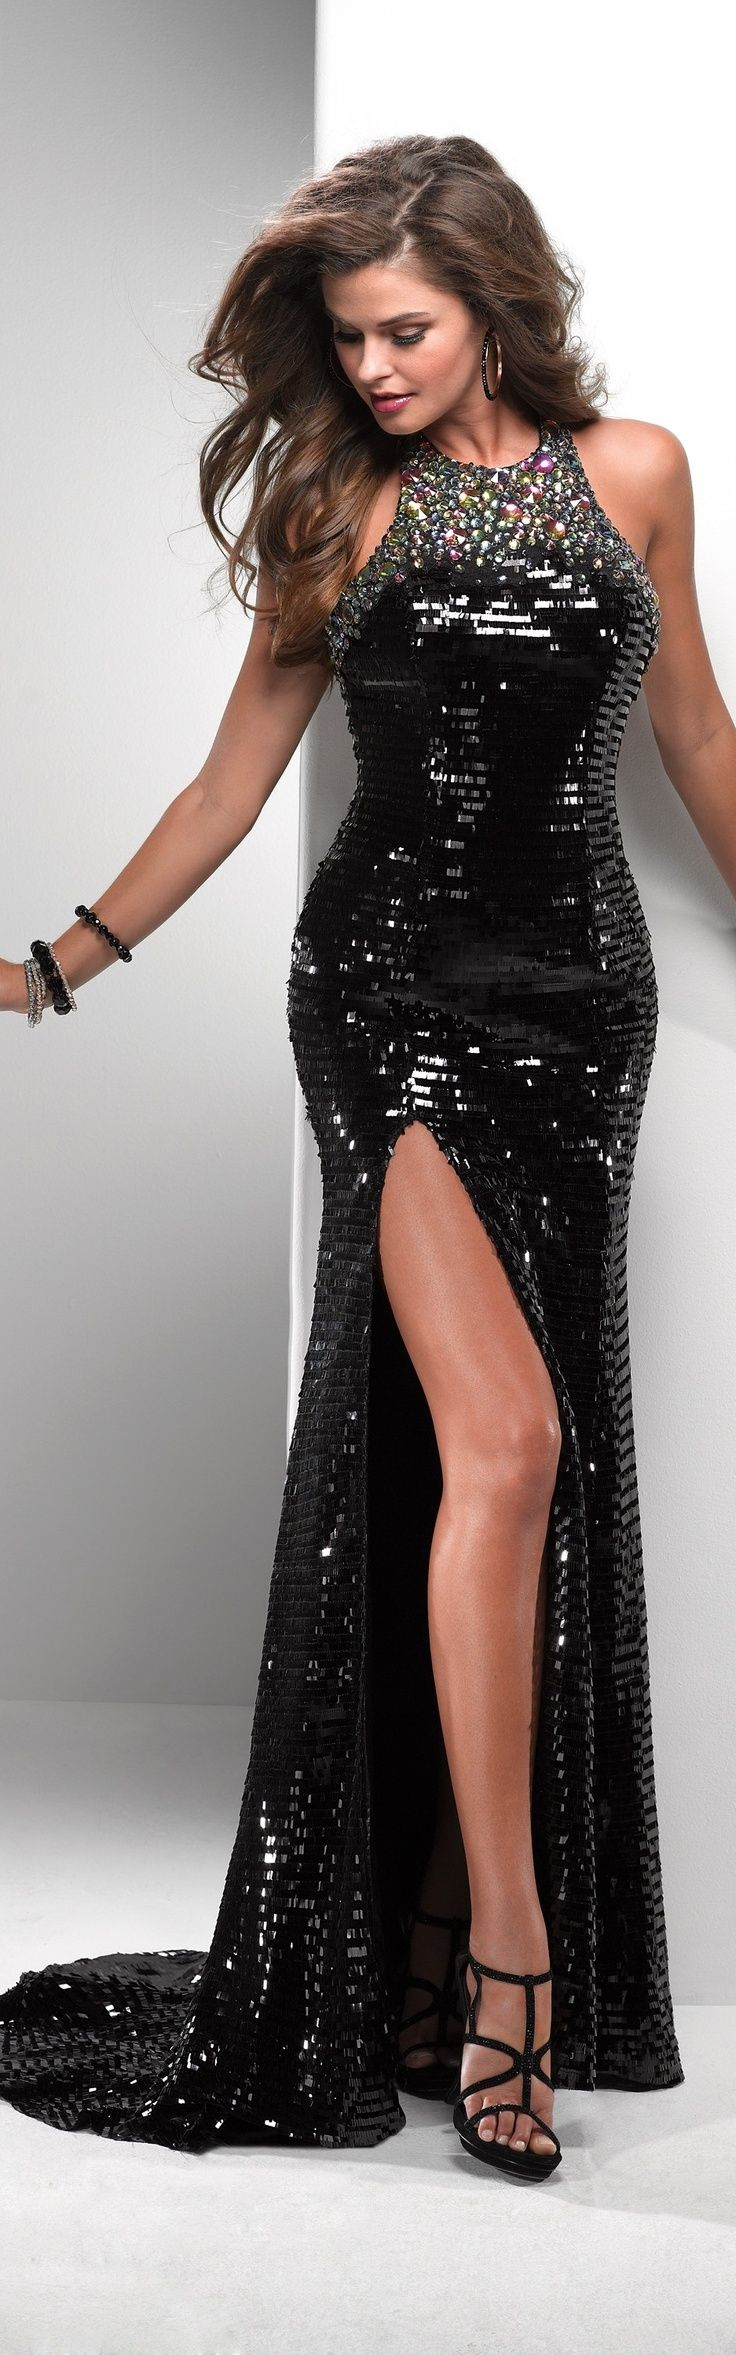 This would be prom dress #1. If I went